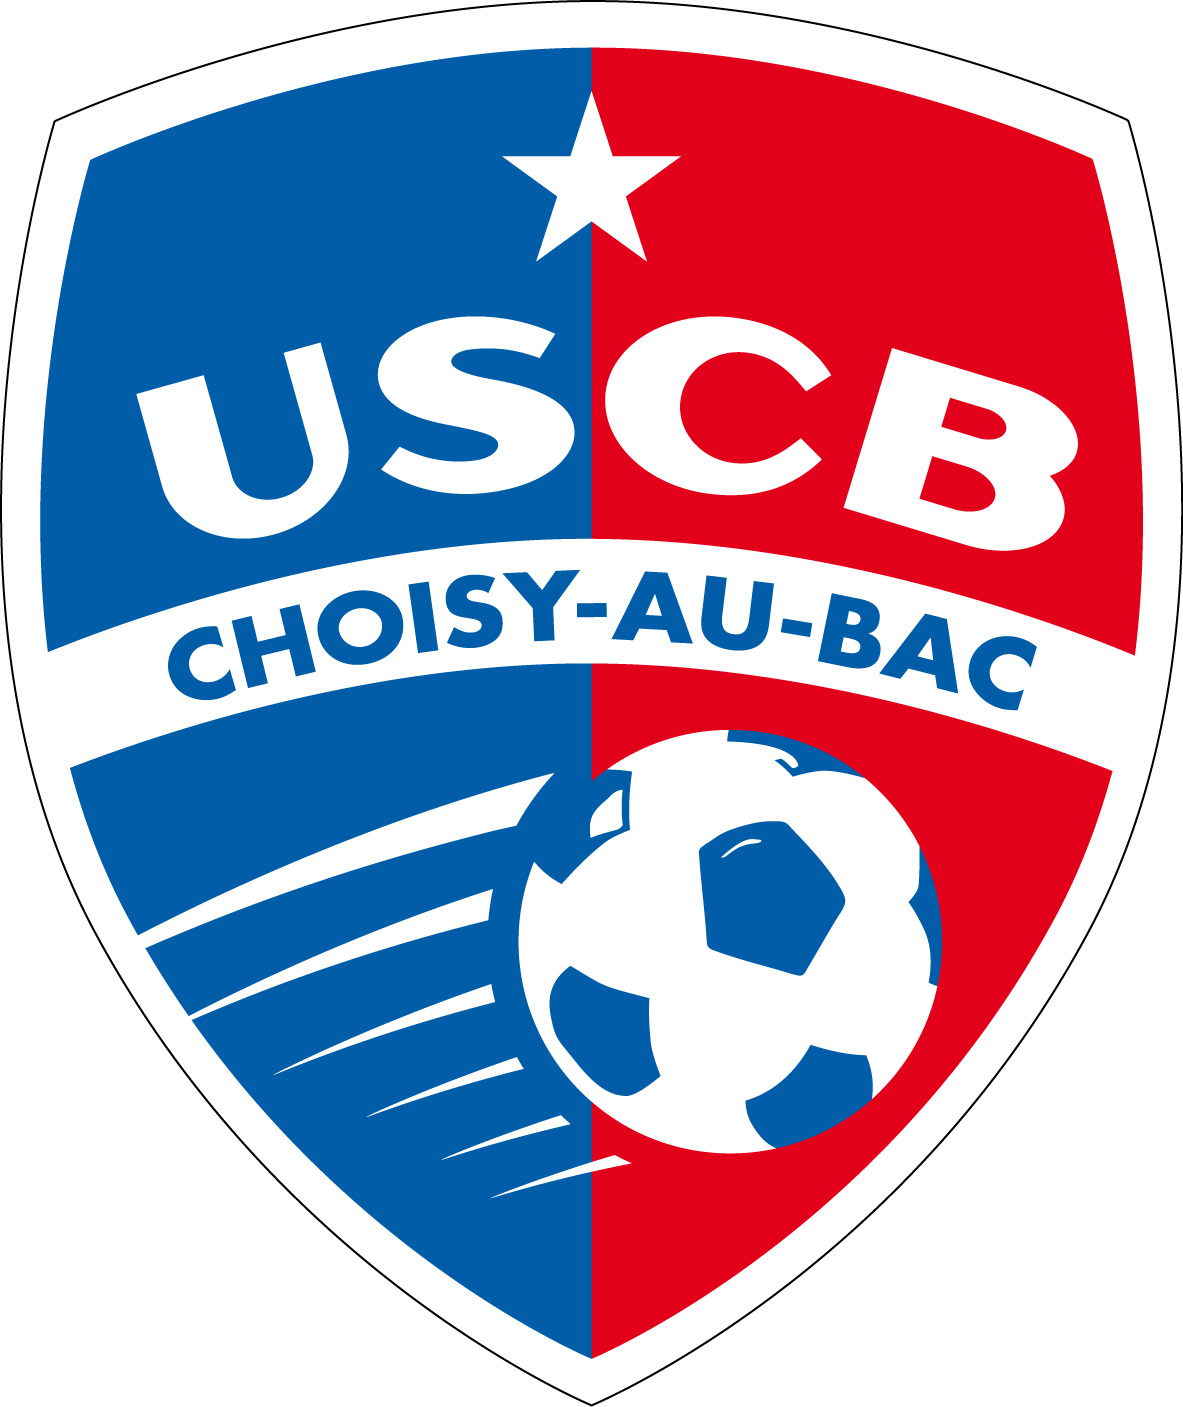 Union Sportive Choisy-au-Bac